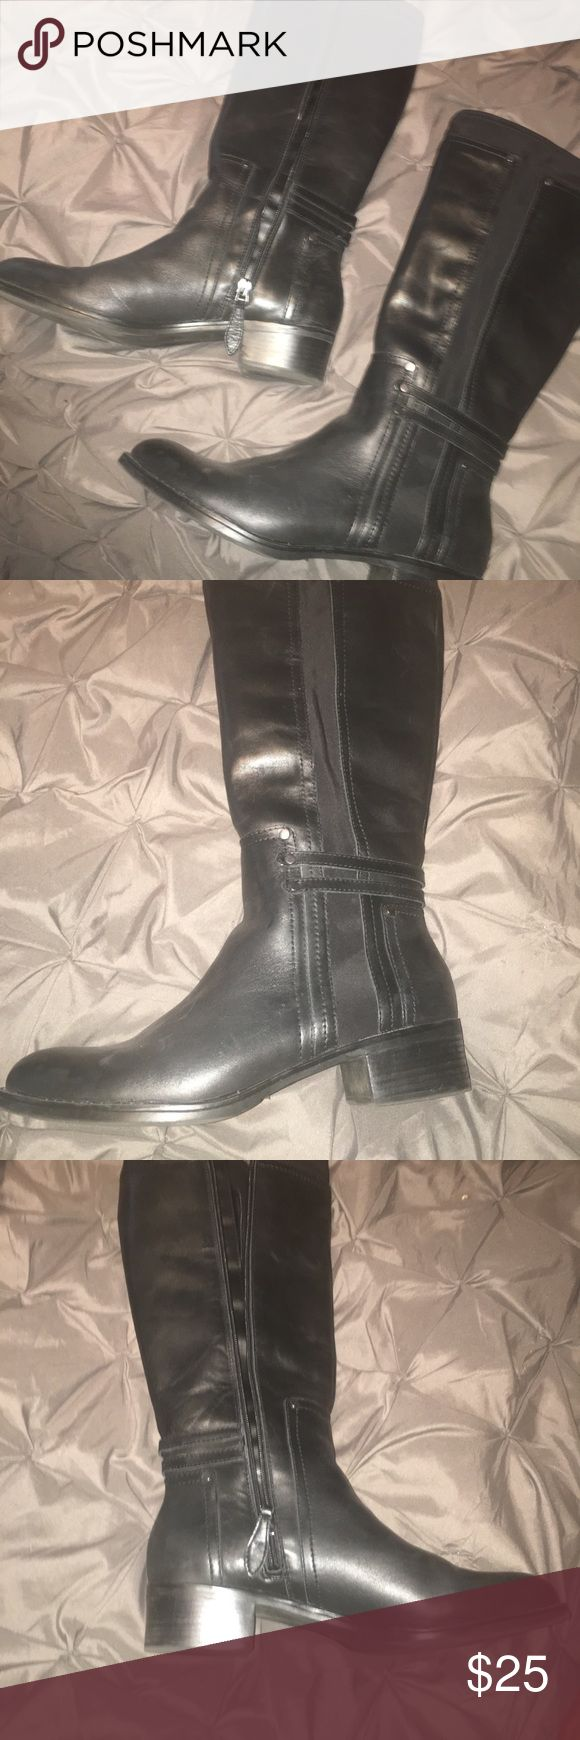 Ladies Riding Boots Size 11 NWOT Ladies Riding Boots Size 11 NWOT by Xappeal Shoes Combat & Moto Boots